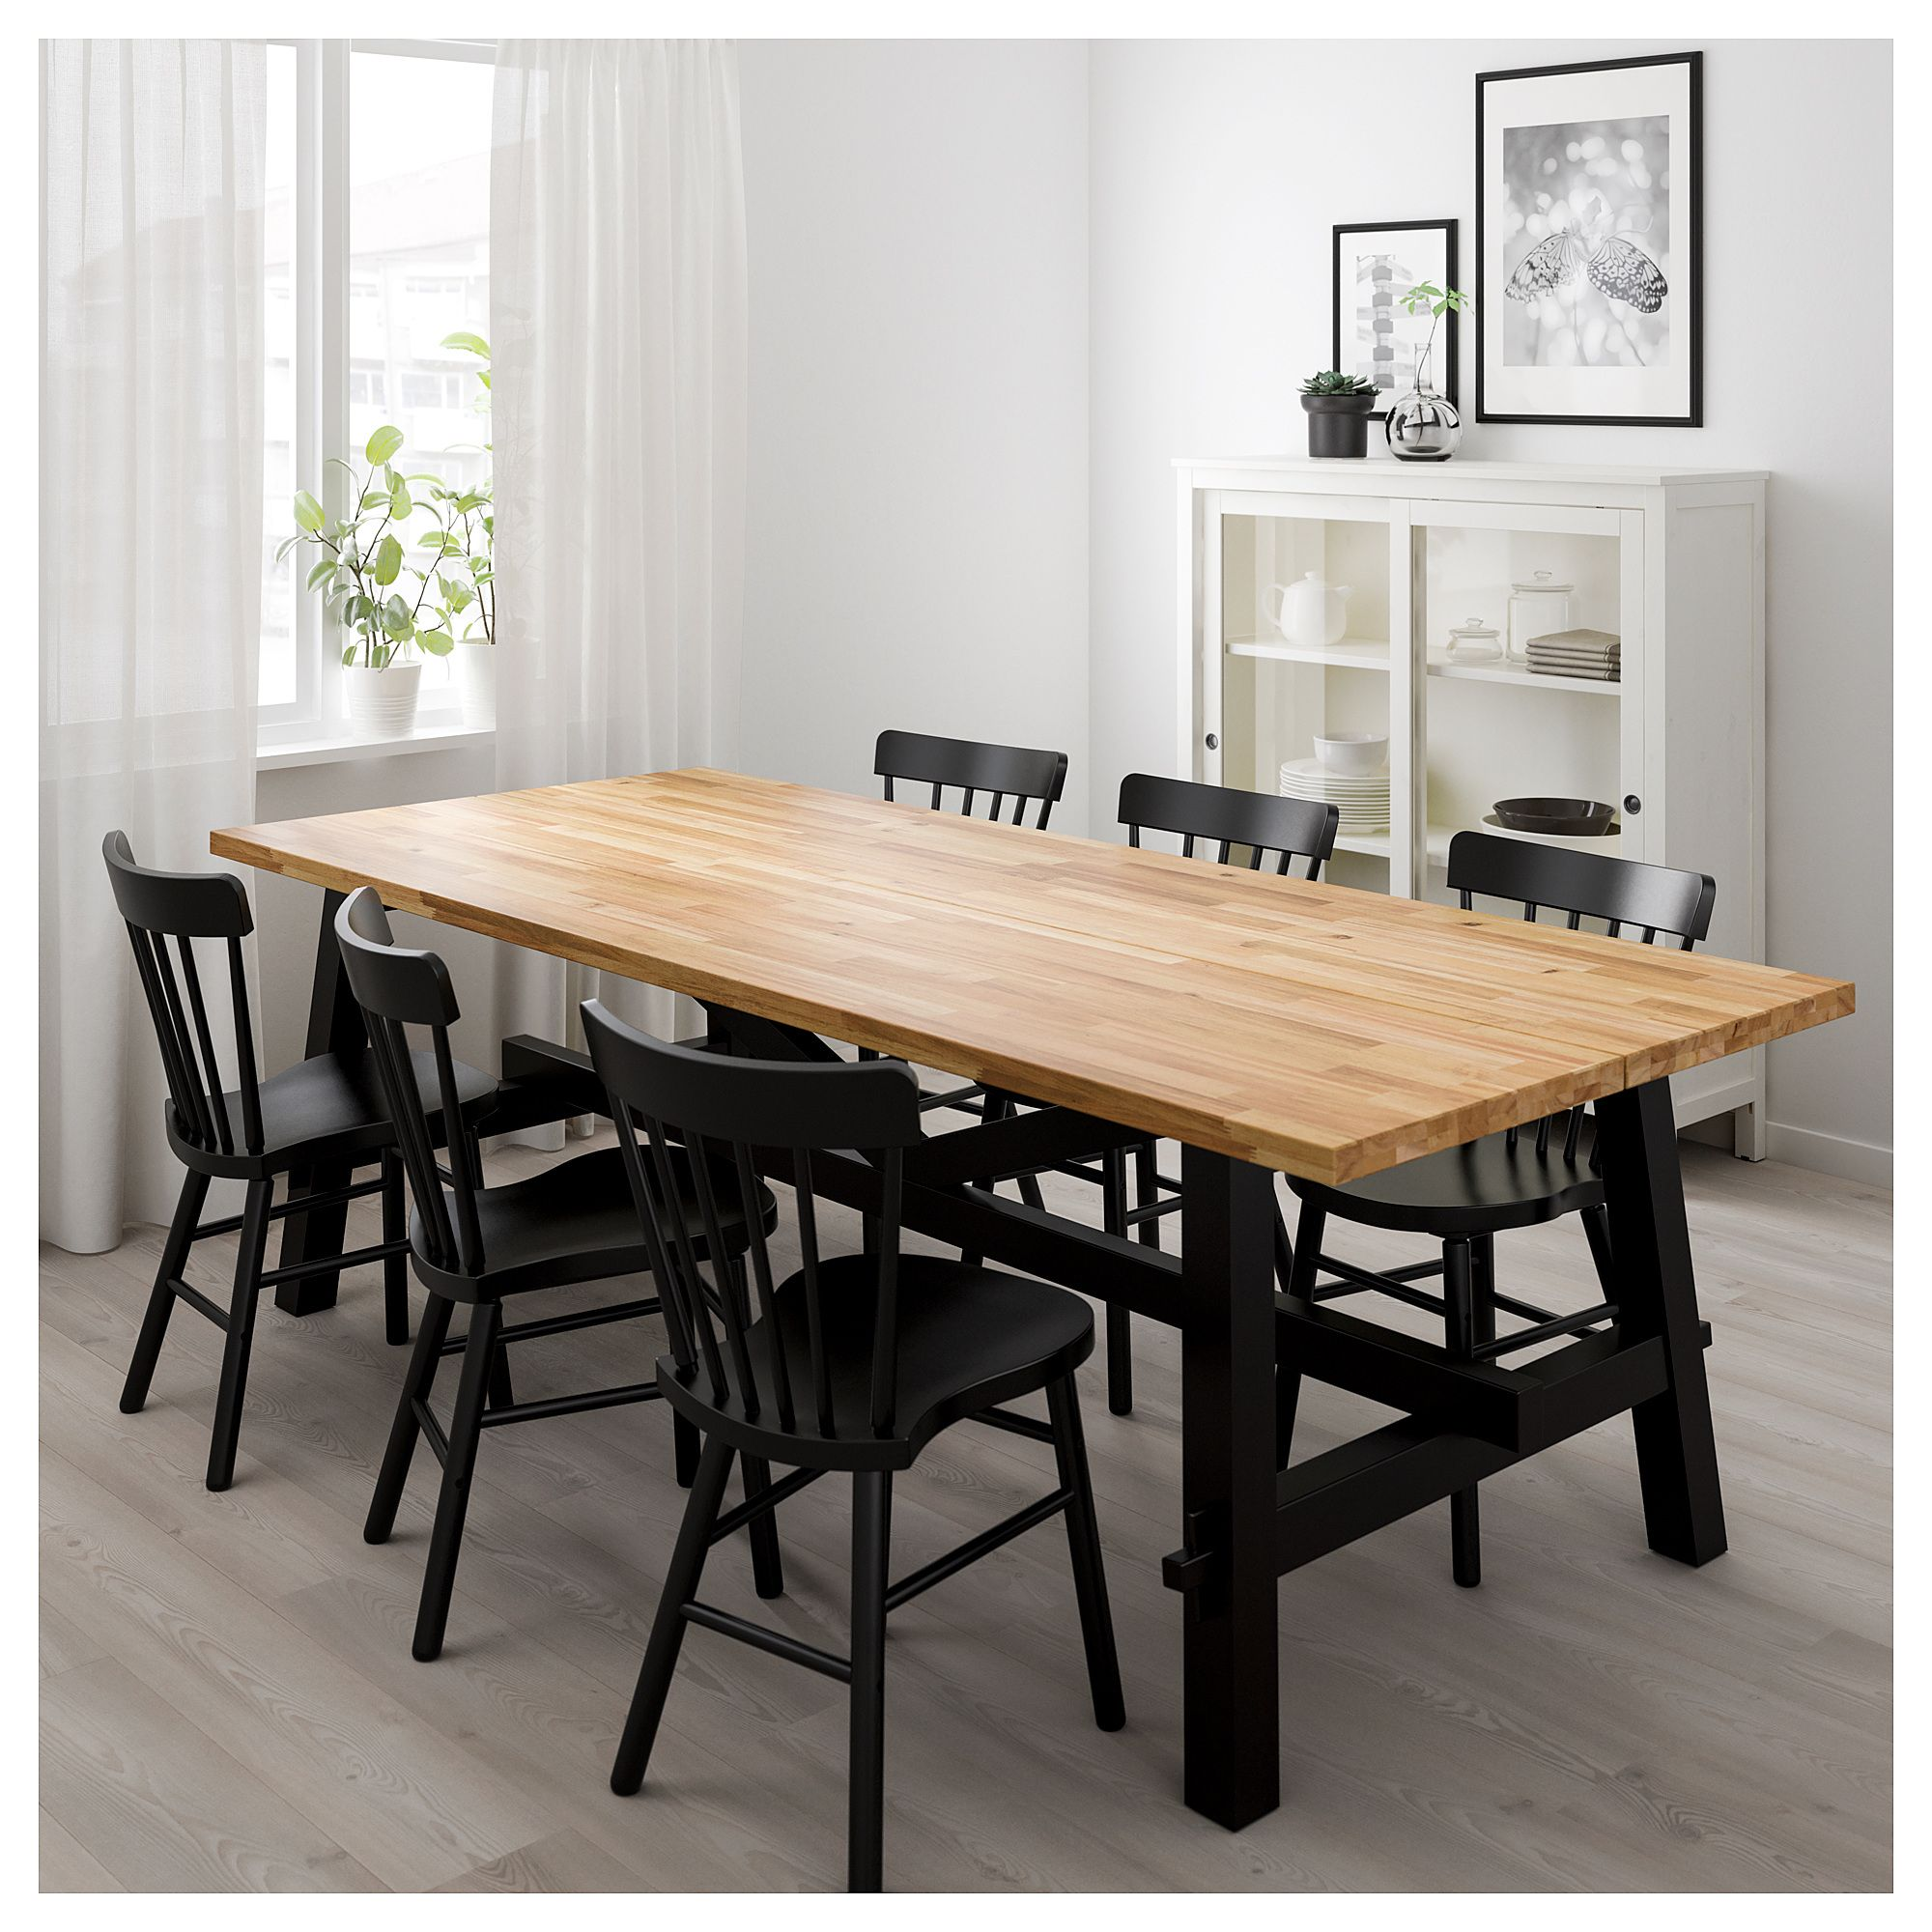 Ikea Kitchen Table: Furniture And Home Furnishings